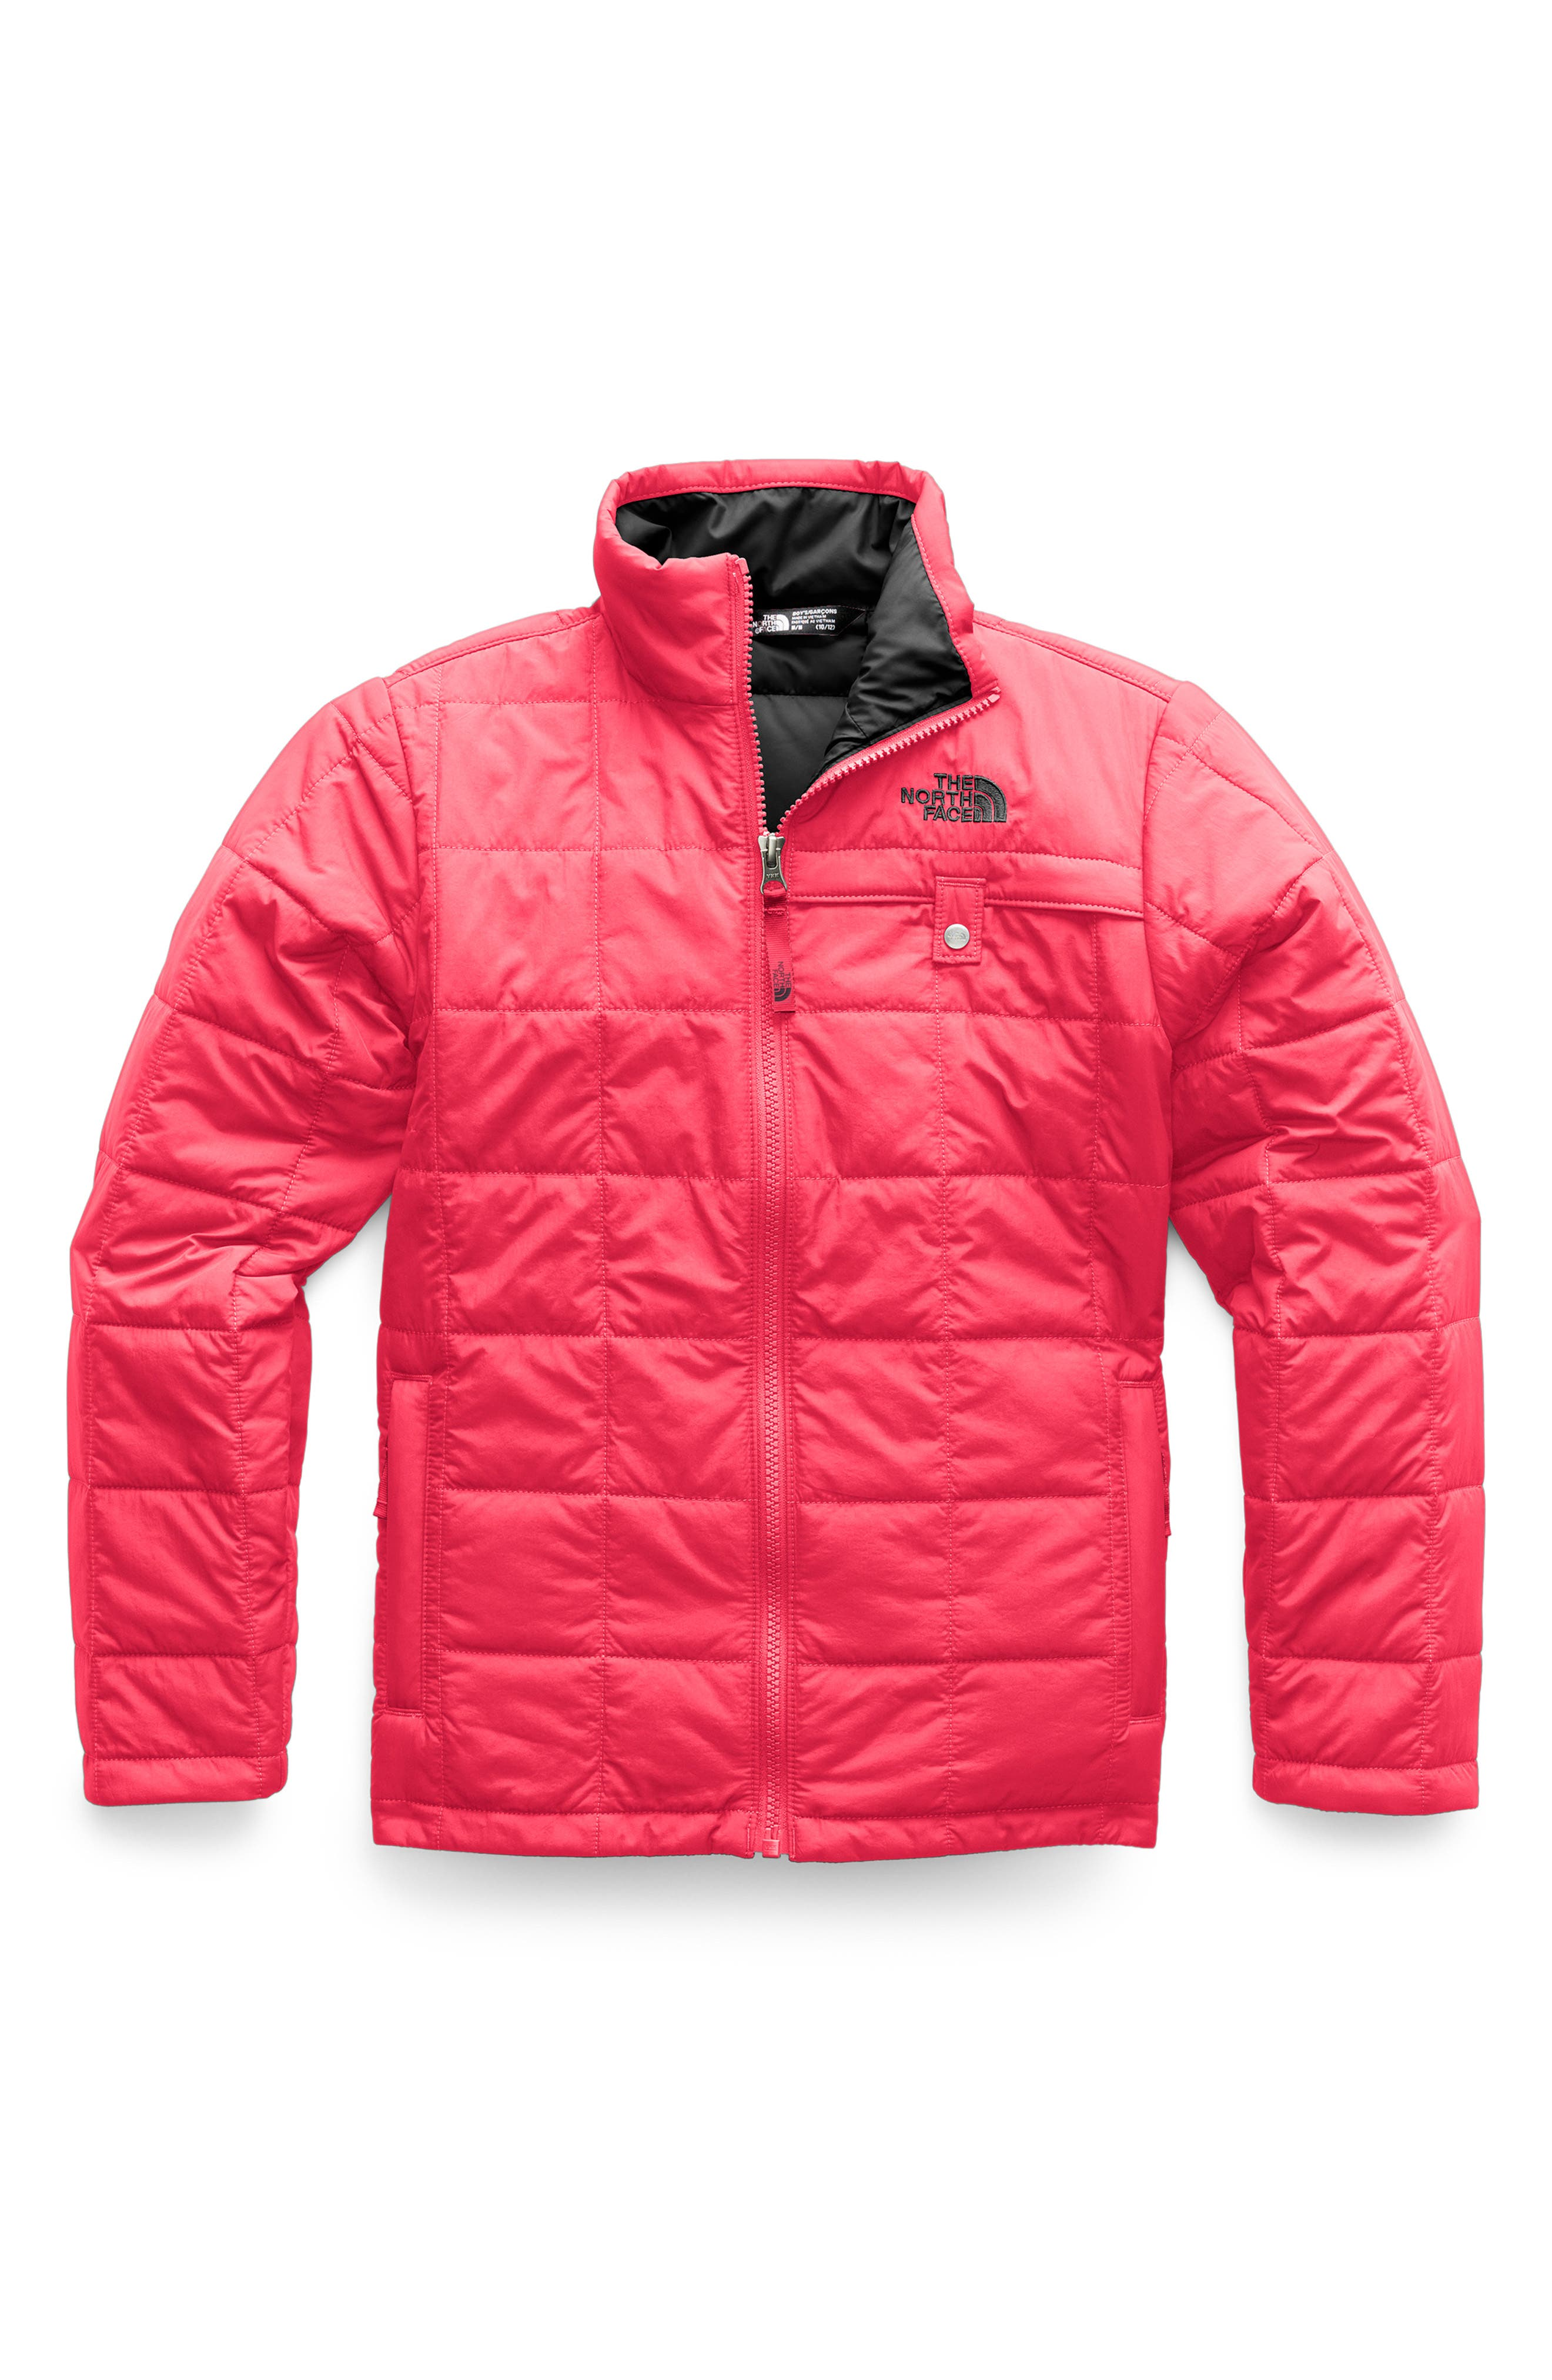 THE NORTH FACE Harway Heatseeker<sup>™</sup> Water Resistant Jacket, Main, color, TNF RED